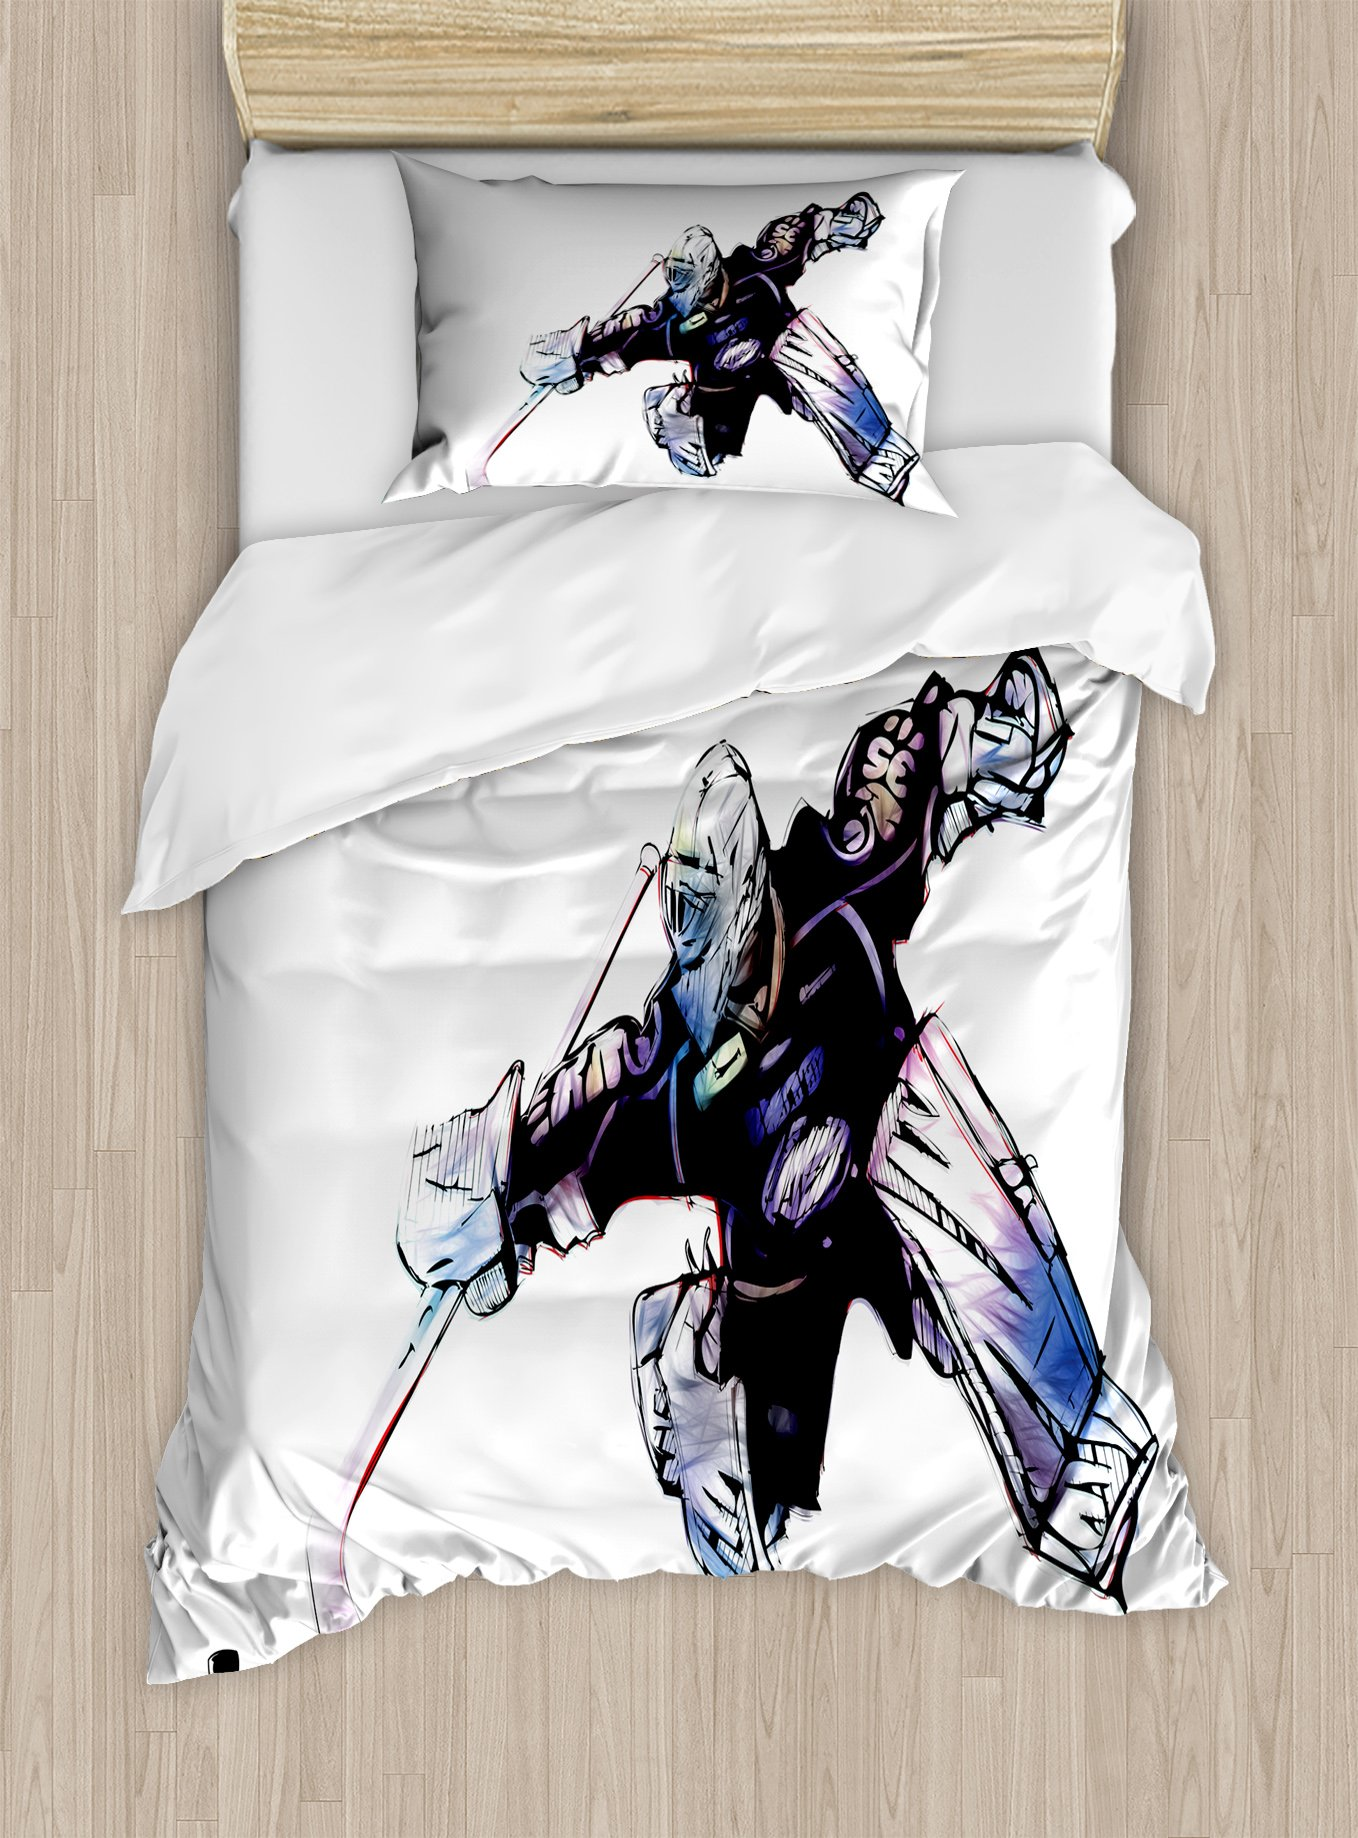 Ambesonne Hockey Twin Size Duvet Cover Set, Goalkeeper in Hand Drawn Style with Protective Gear in a Competitive Game, Decorative 2 Piece Bedding Set with 1 Pillow Sham, Purple Black White